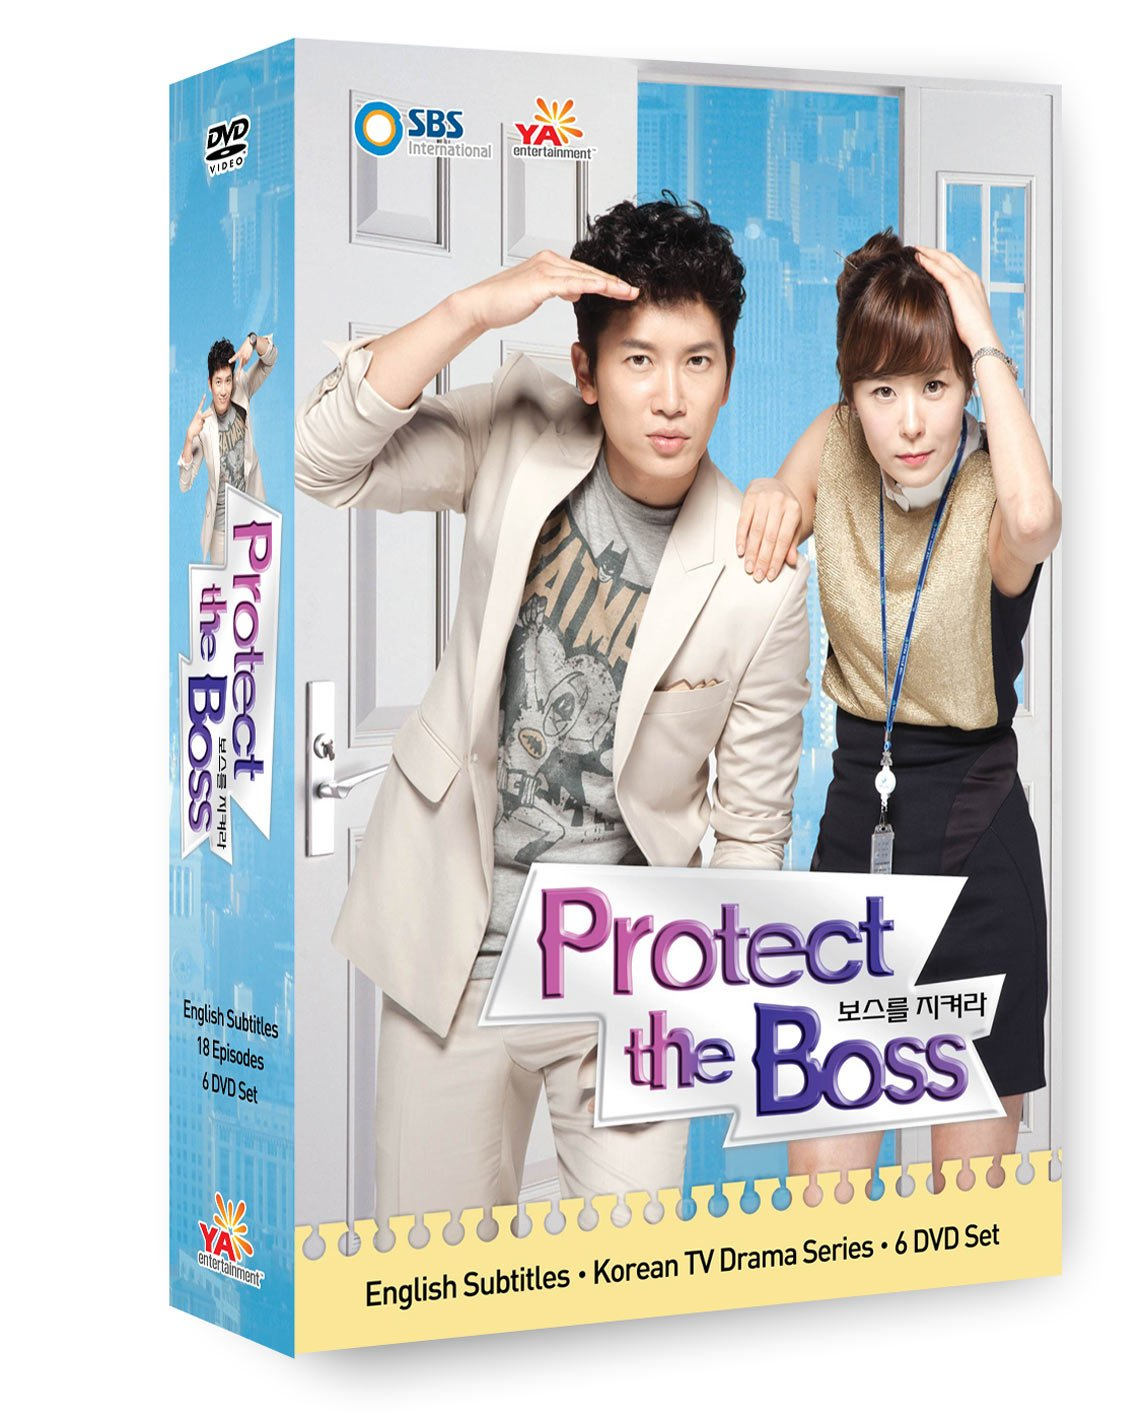 Save the Boss: actors and features